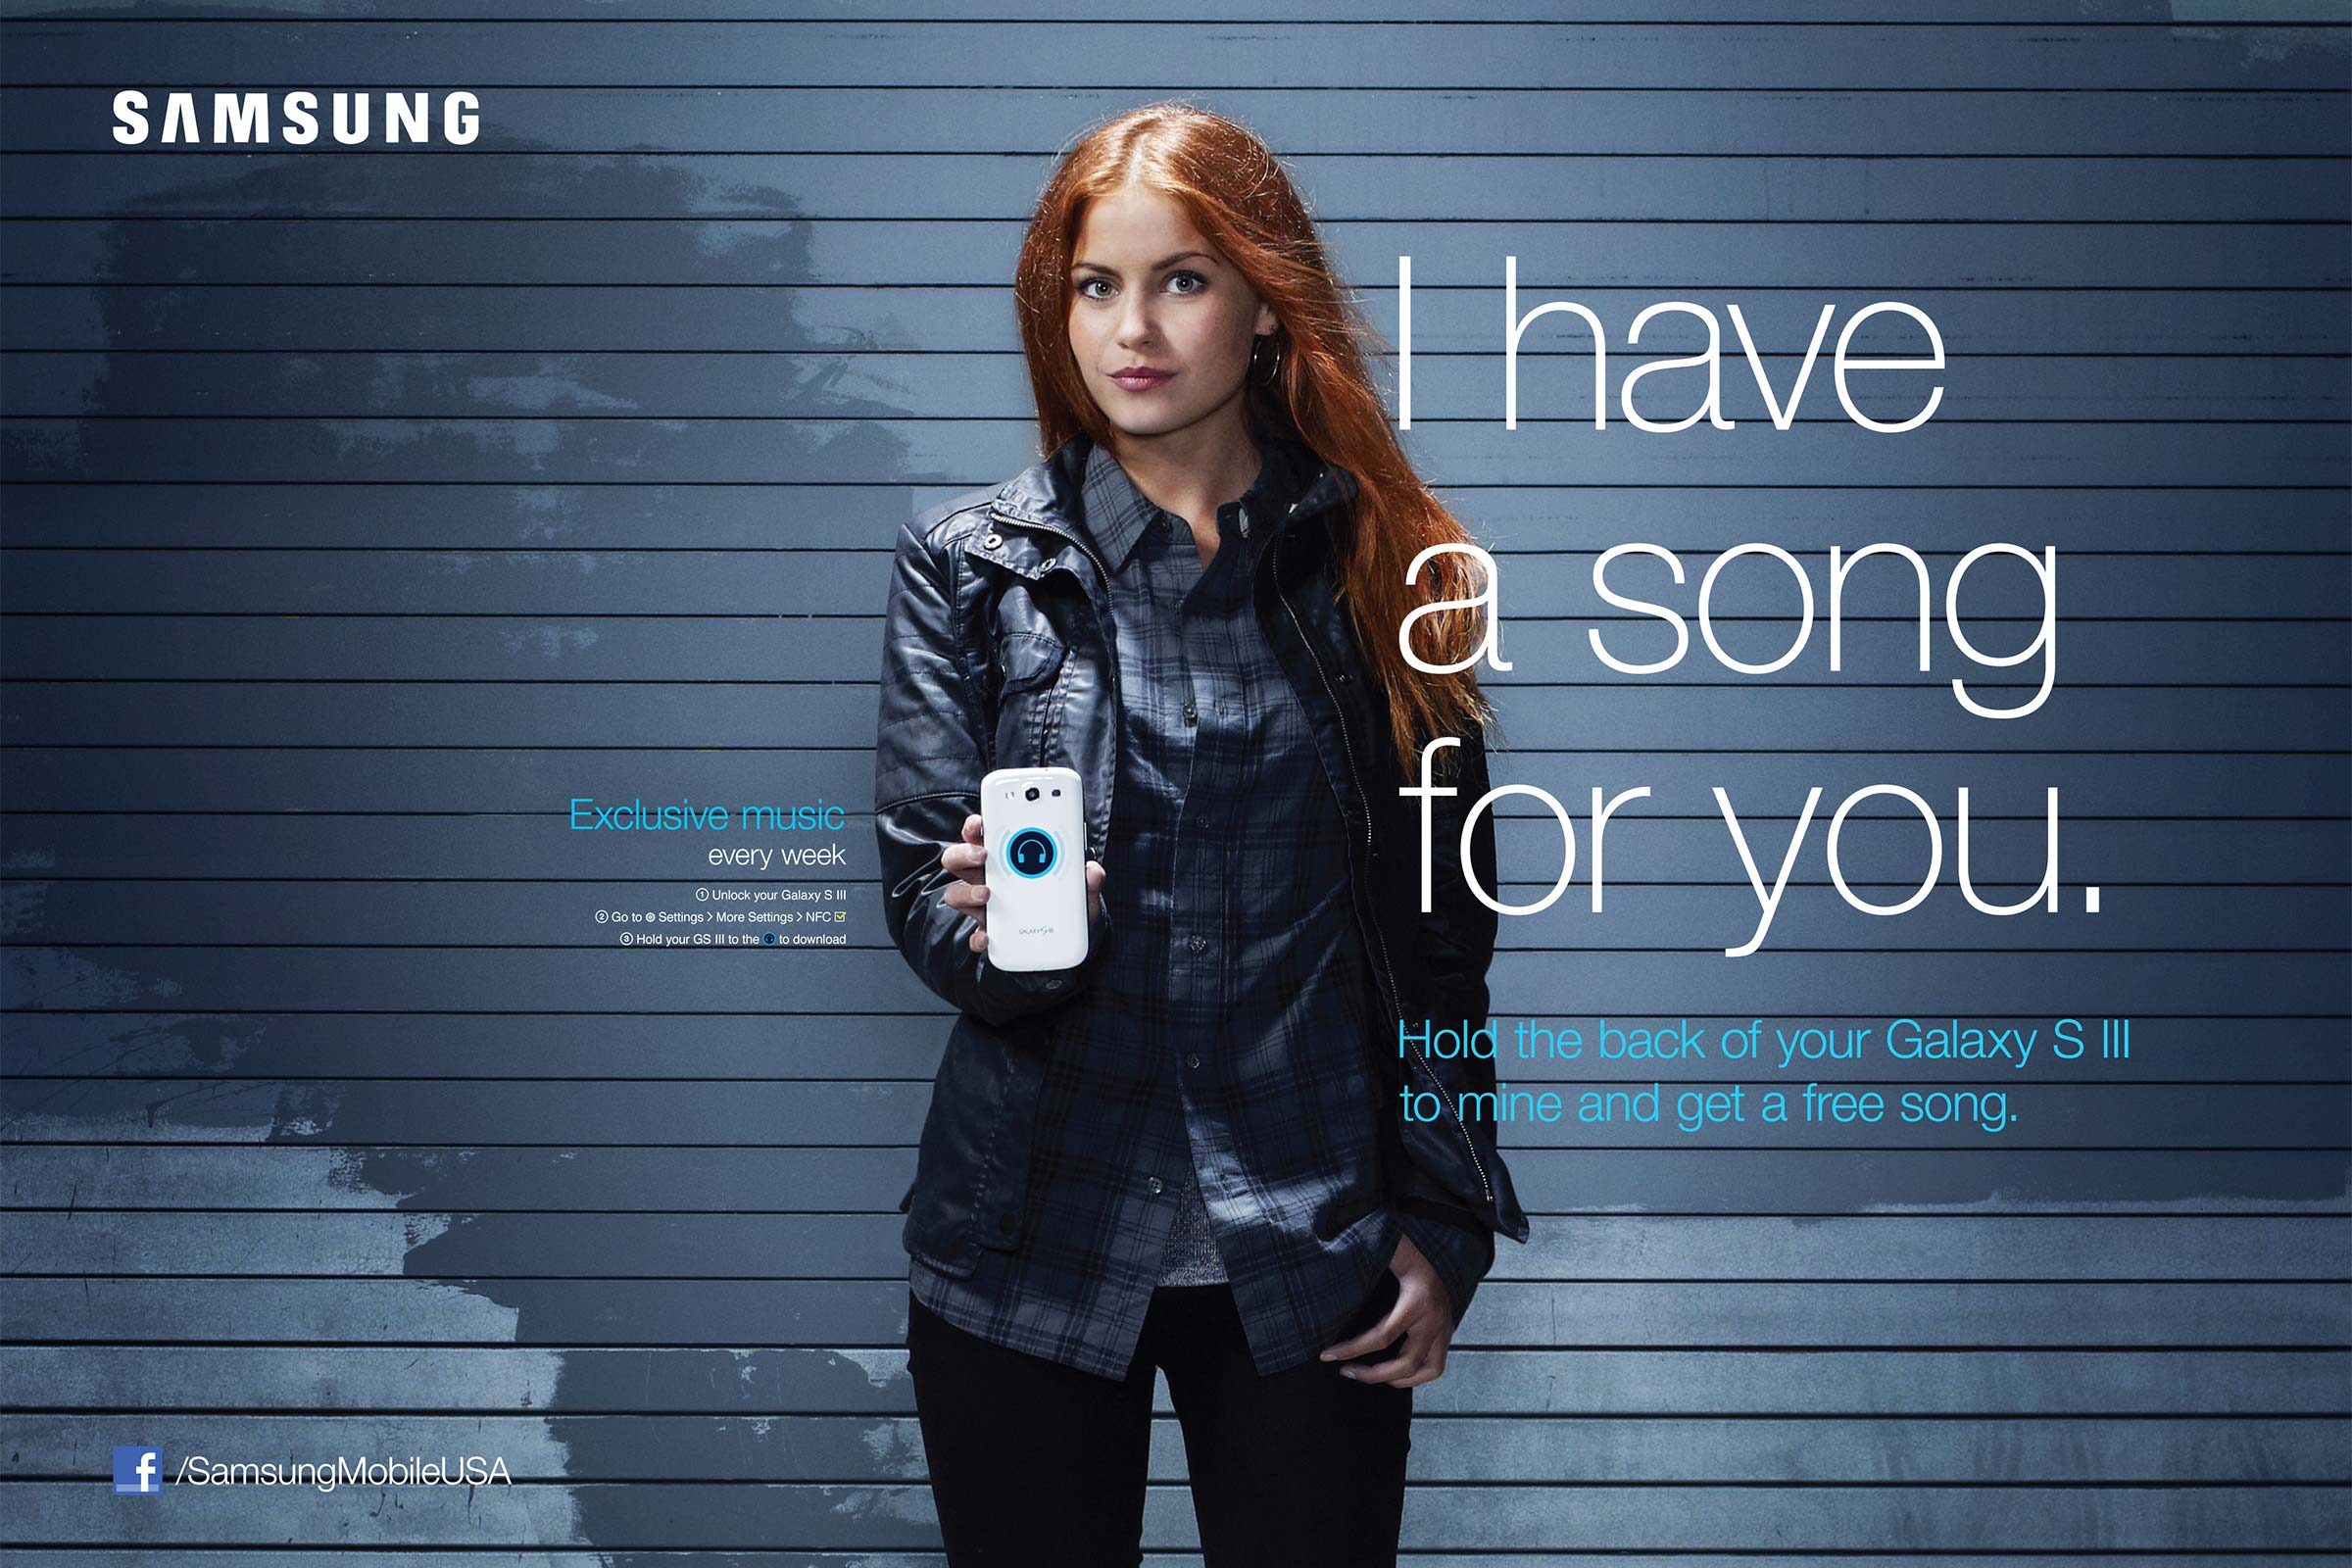 Samsung NFC Powered Out Of Home Poster